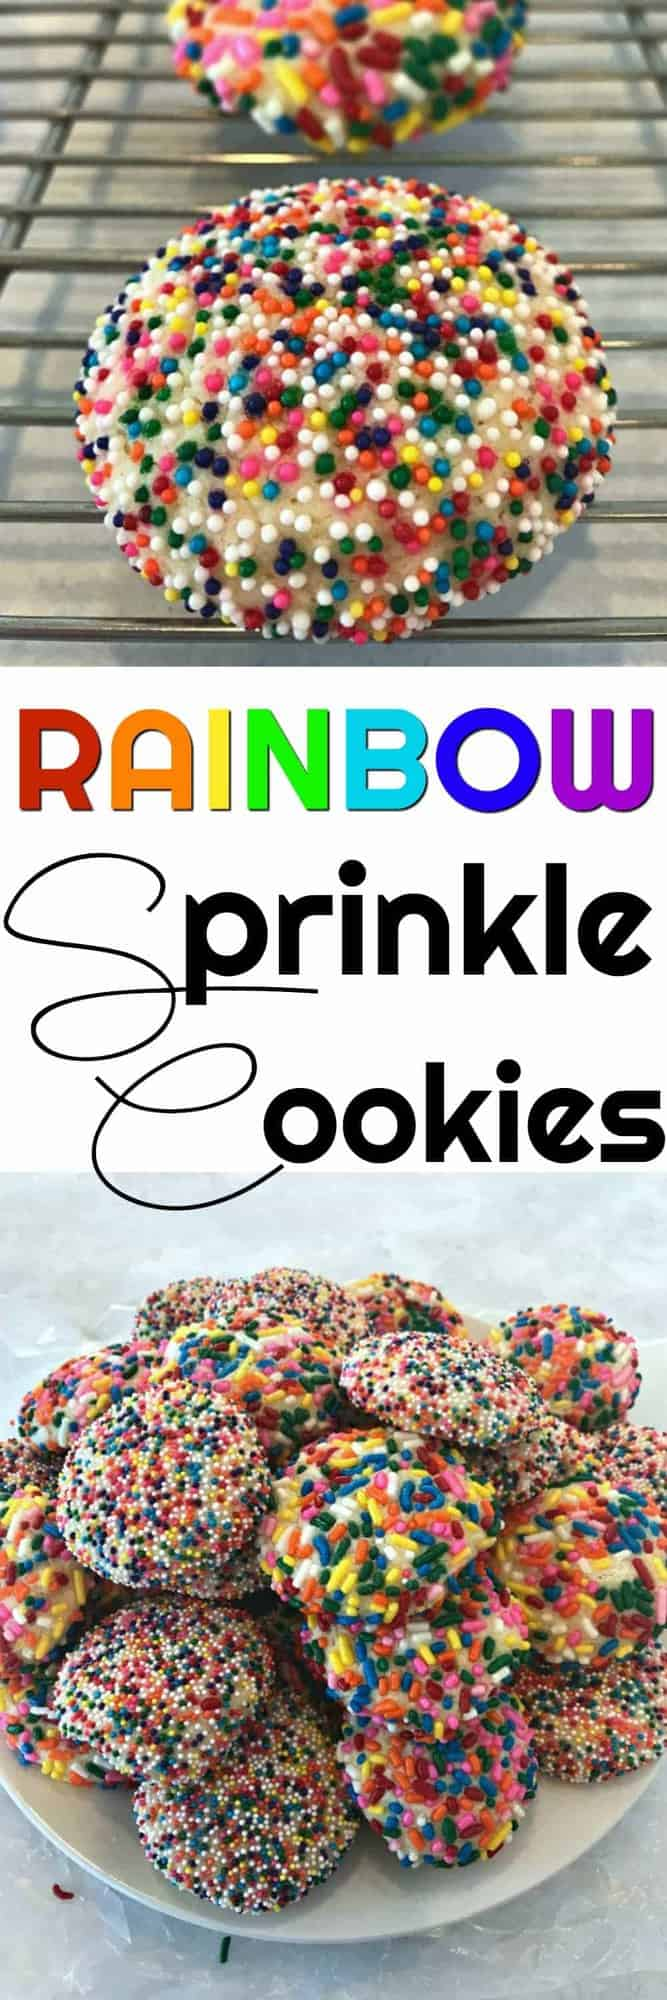 Rainbow Sprinkle Cookies are the happiest cookies on the planet - the perfect special treat for a birthday, Valentine's Day or the best for a Christmas Cookie swap!